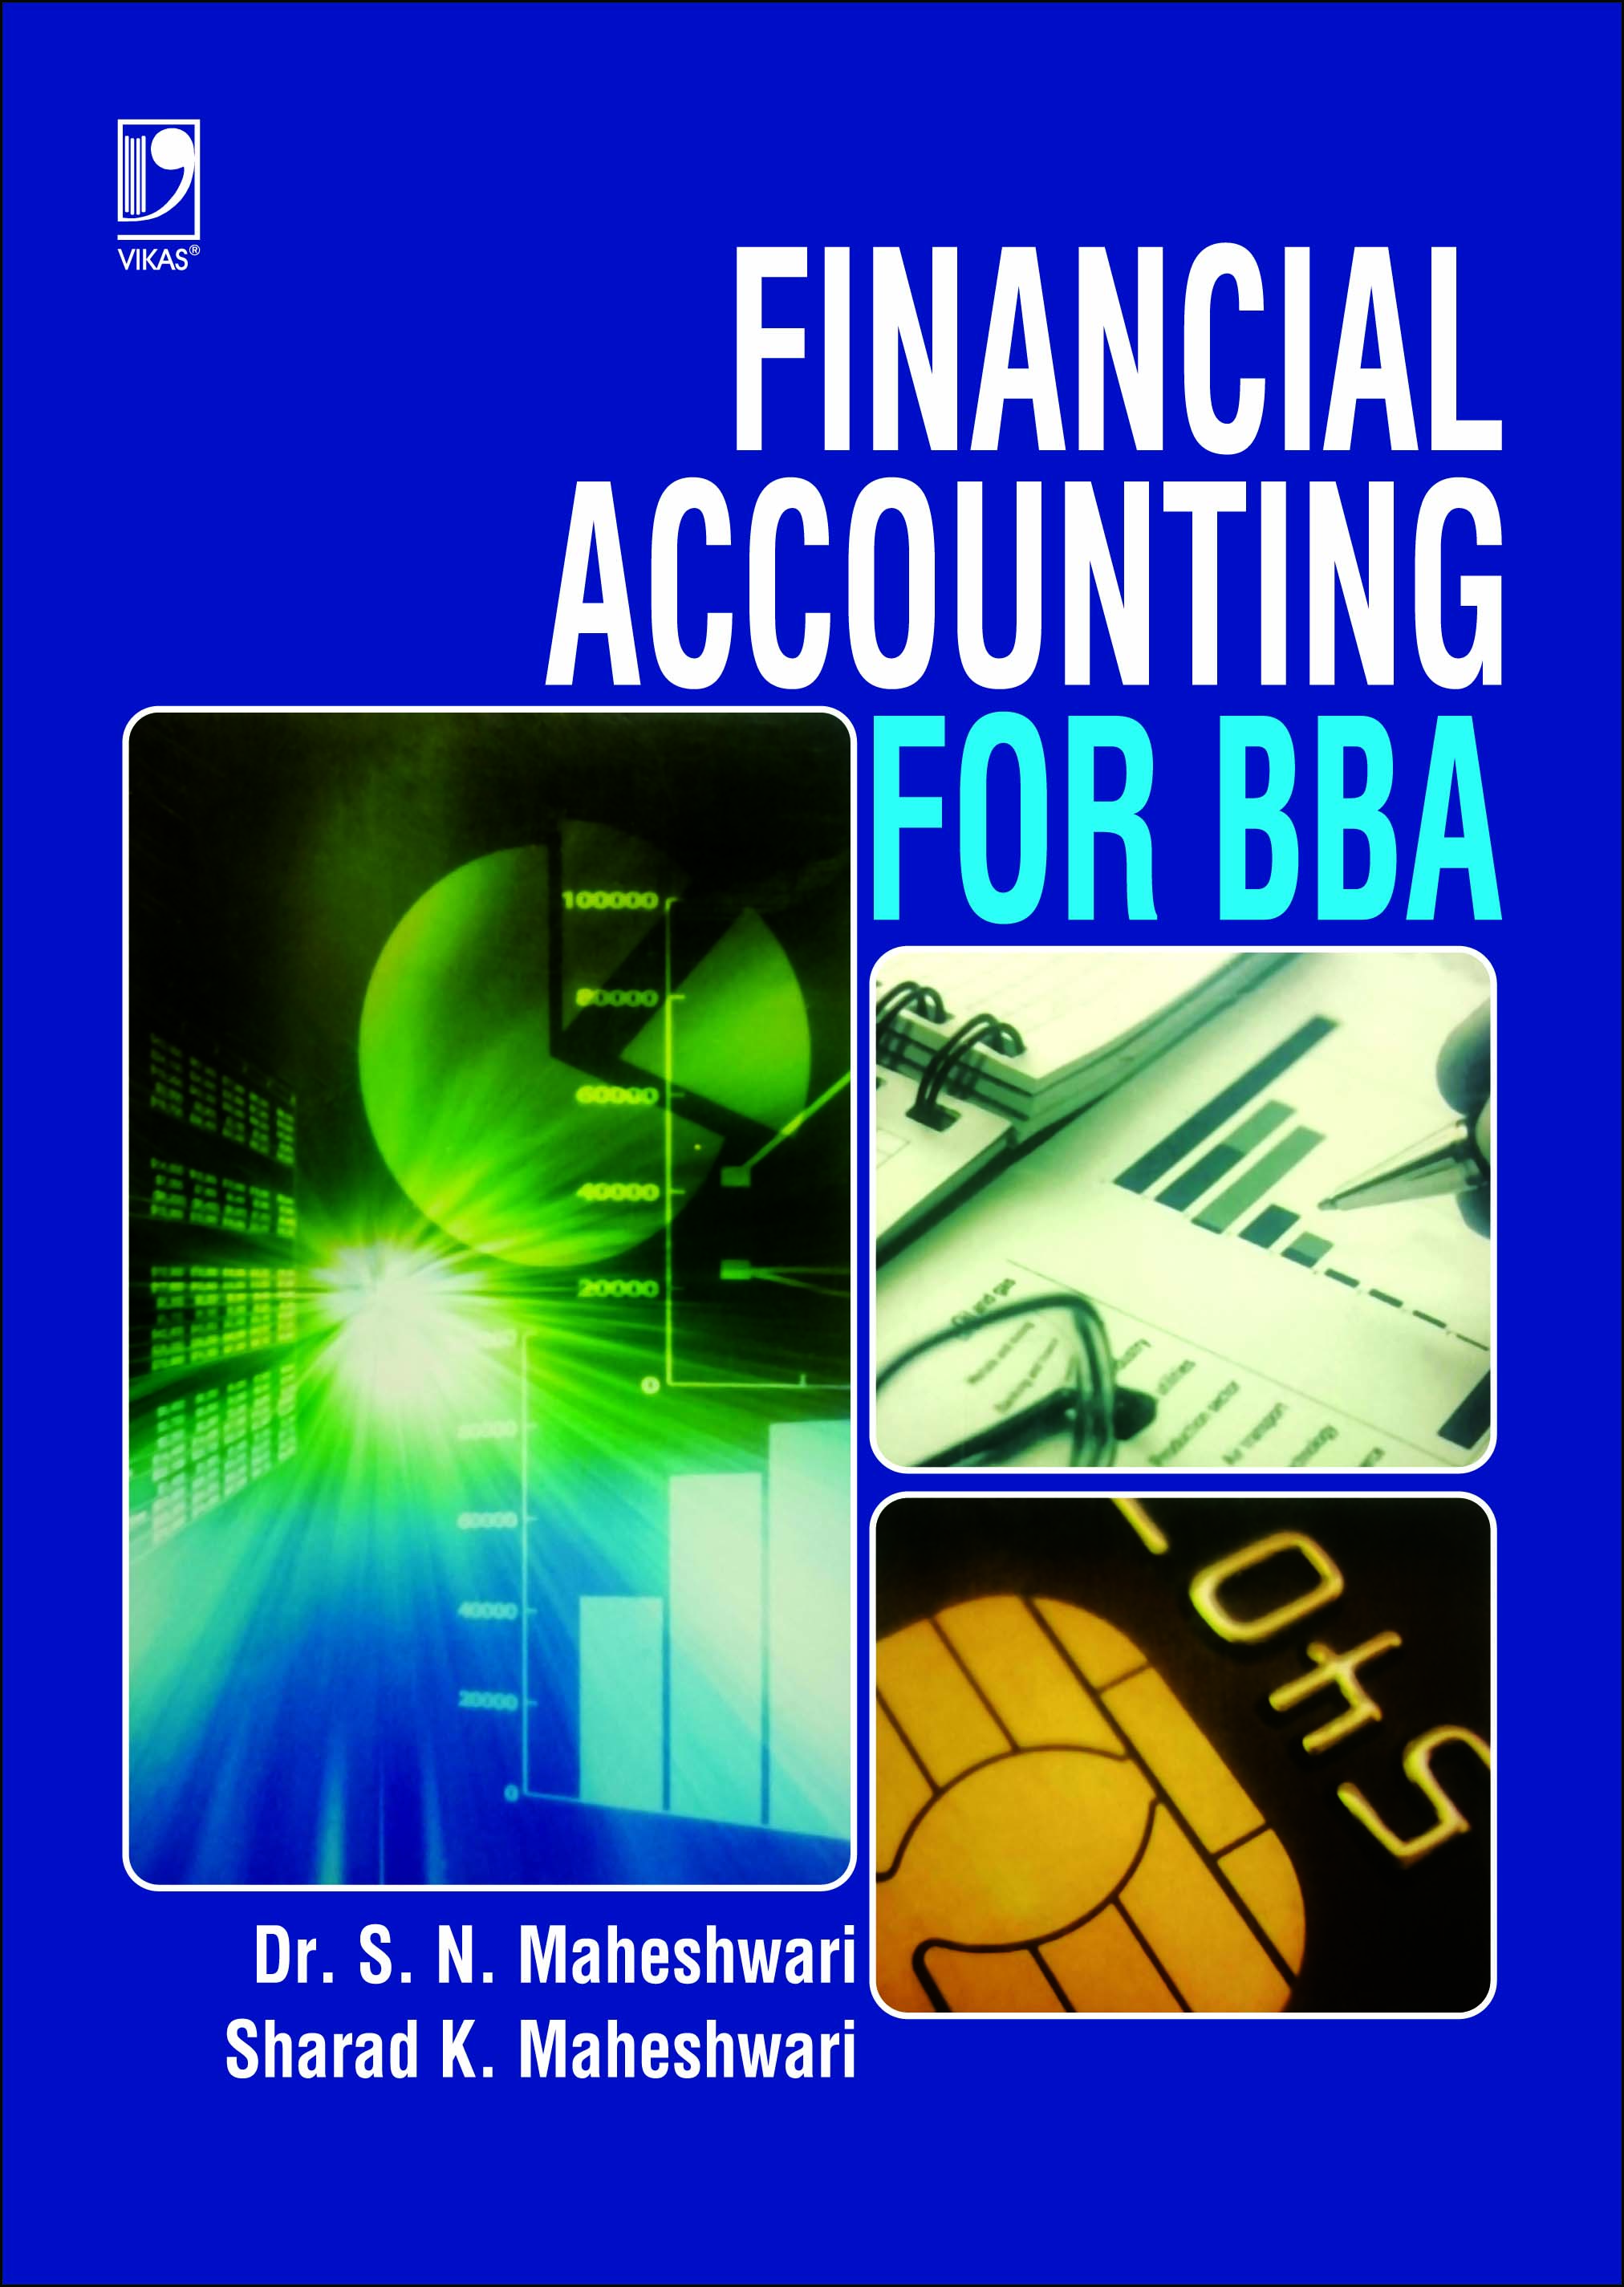 Financial Accounting for BBA